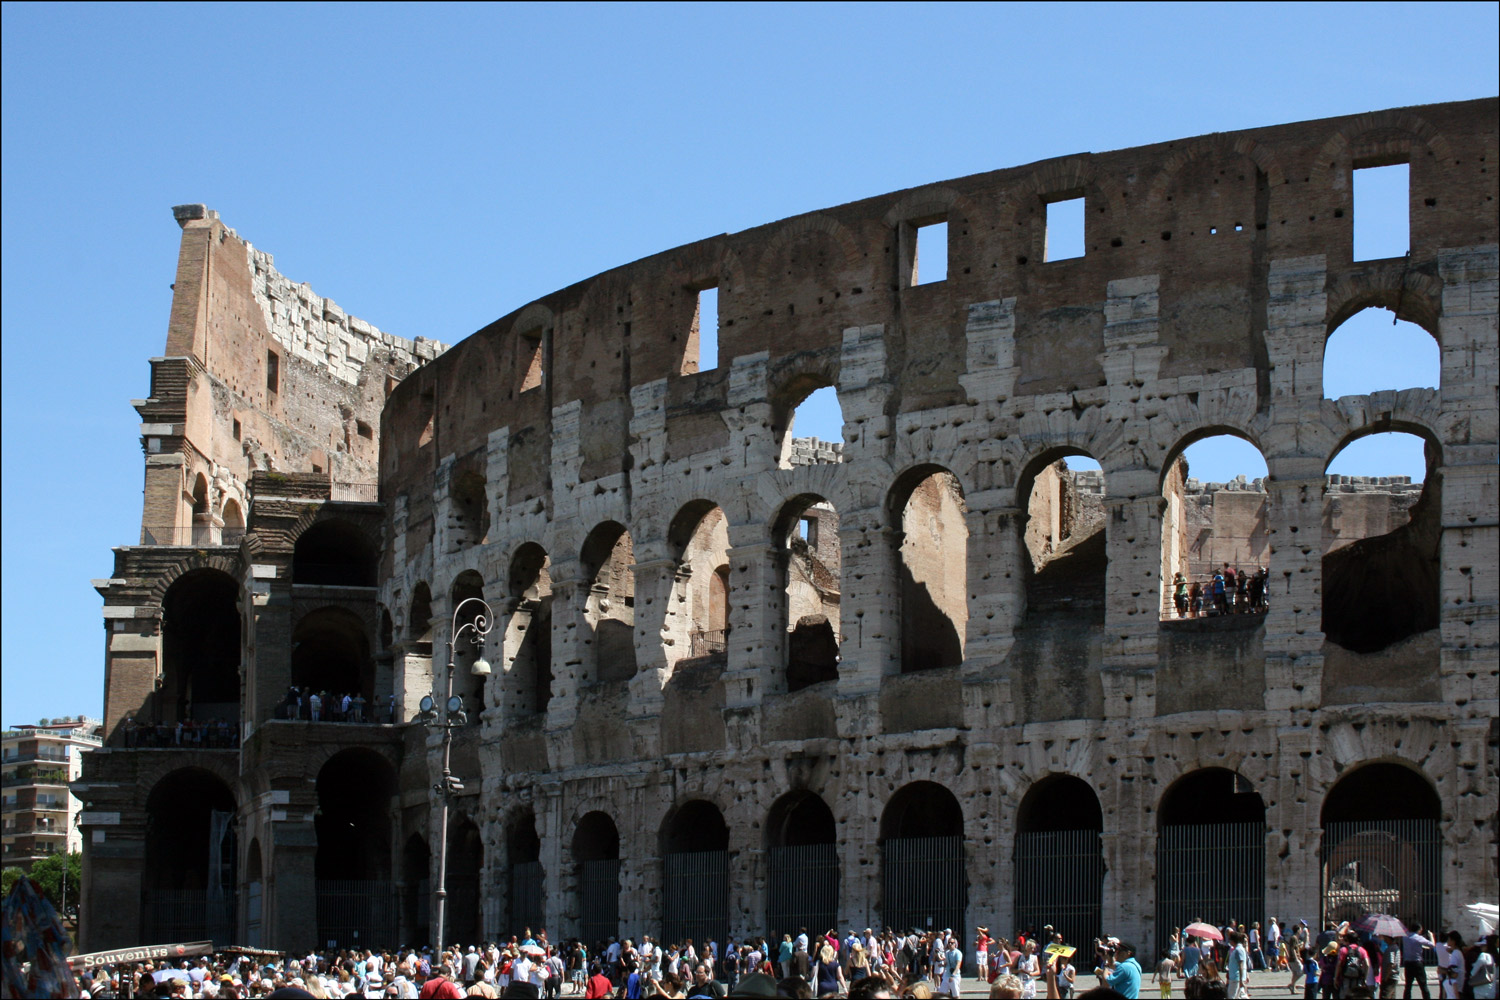 The Exterior of the Colosseum